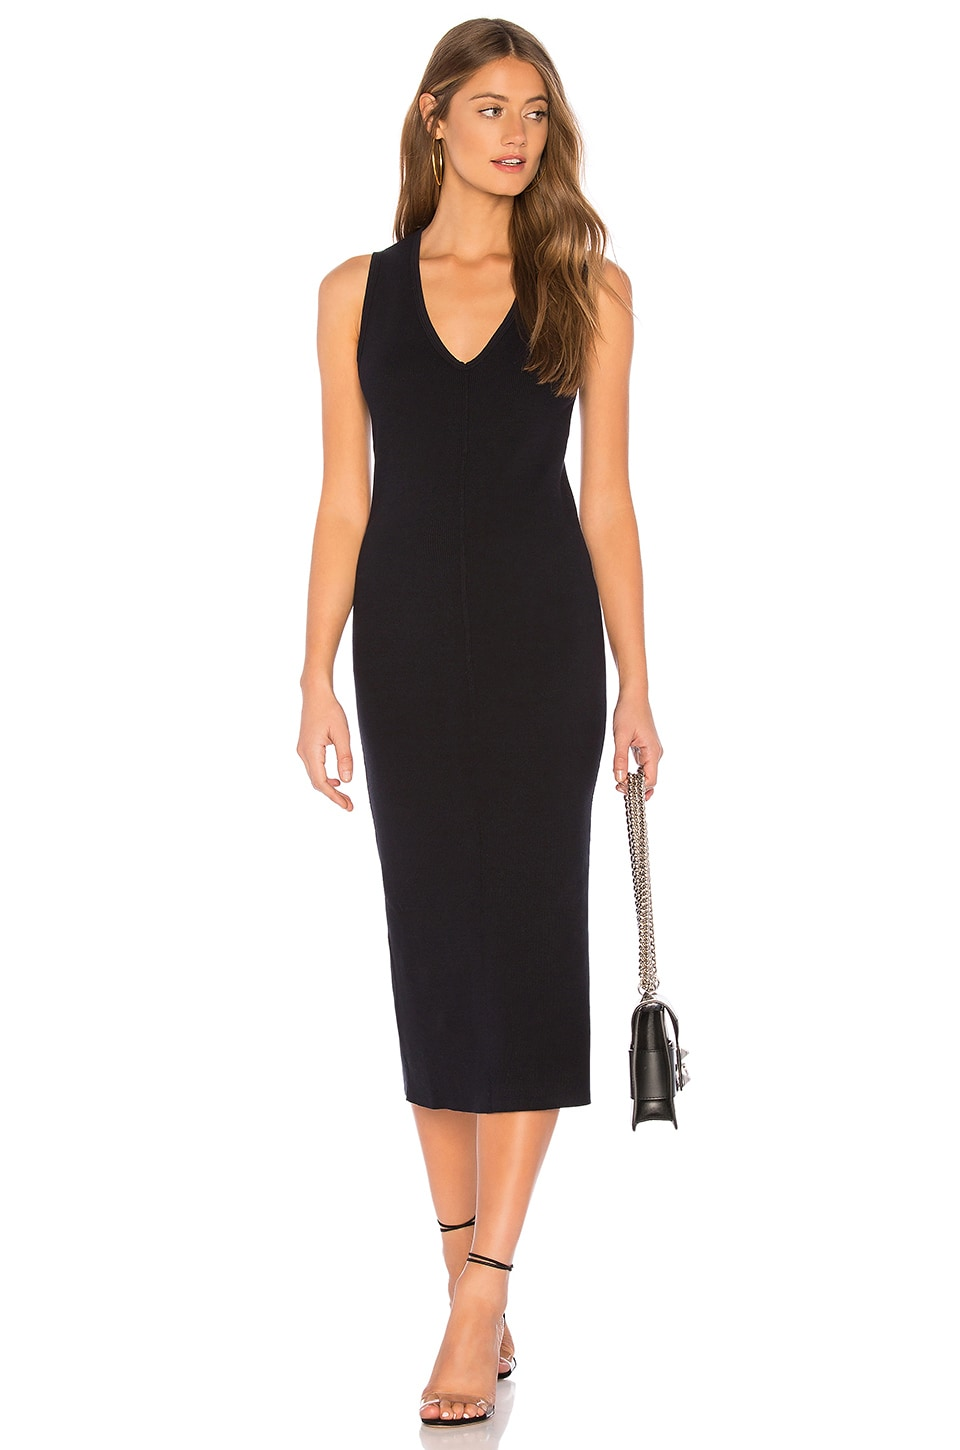 James Perse Contrast Binding Fitted Rib Dress in French Navy